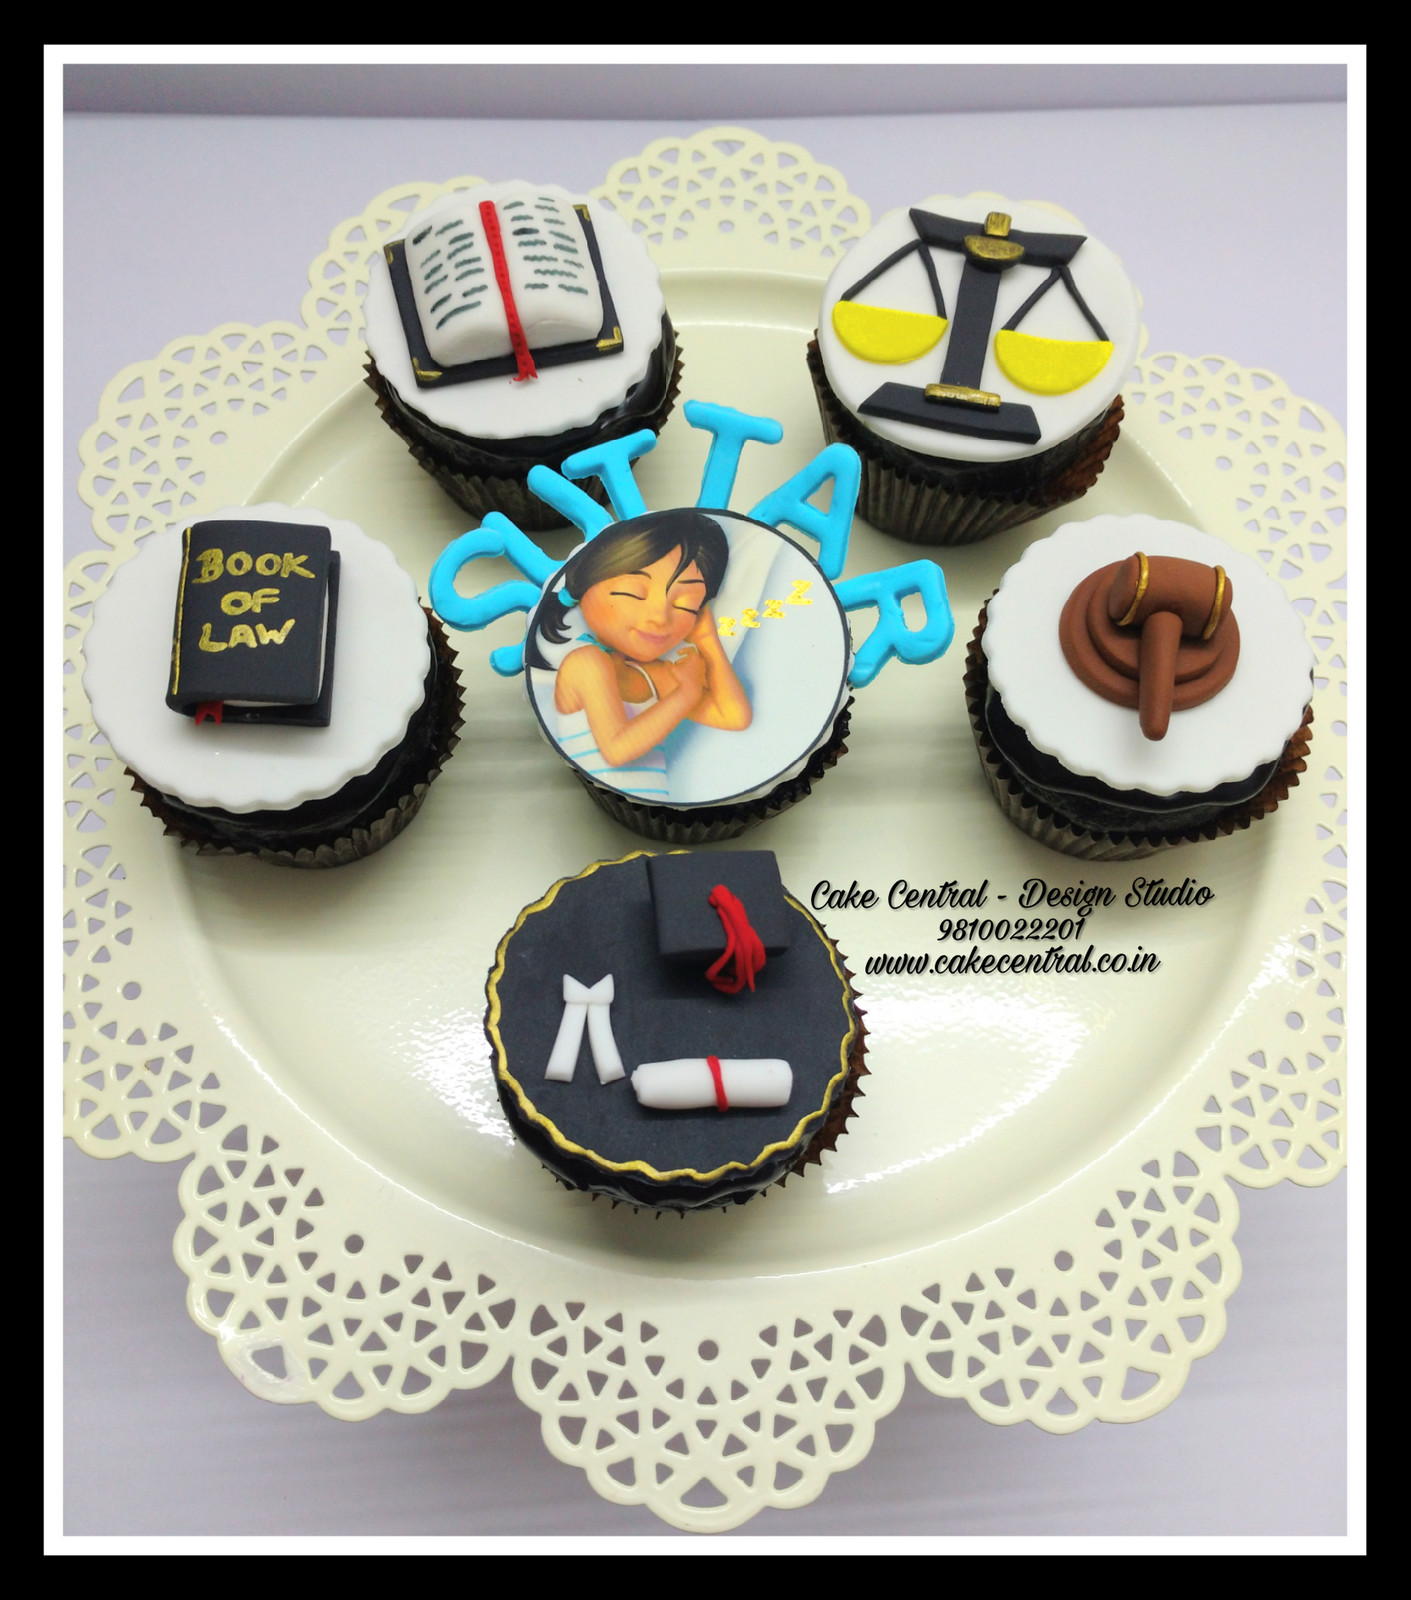 Law Themed Designer Cupcakes